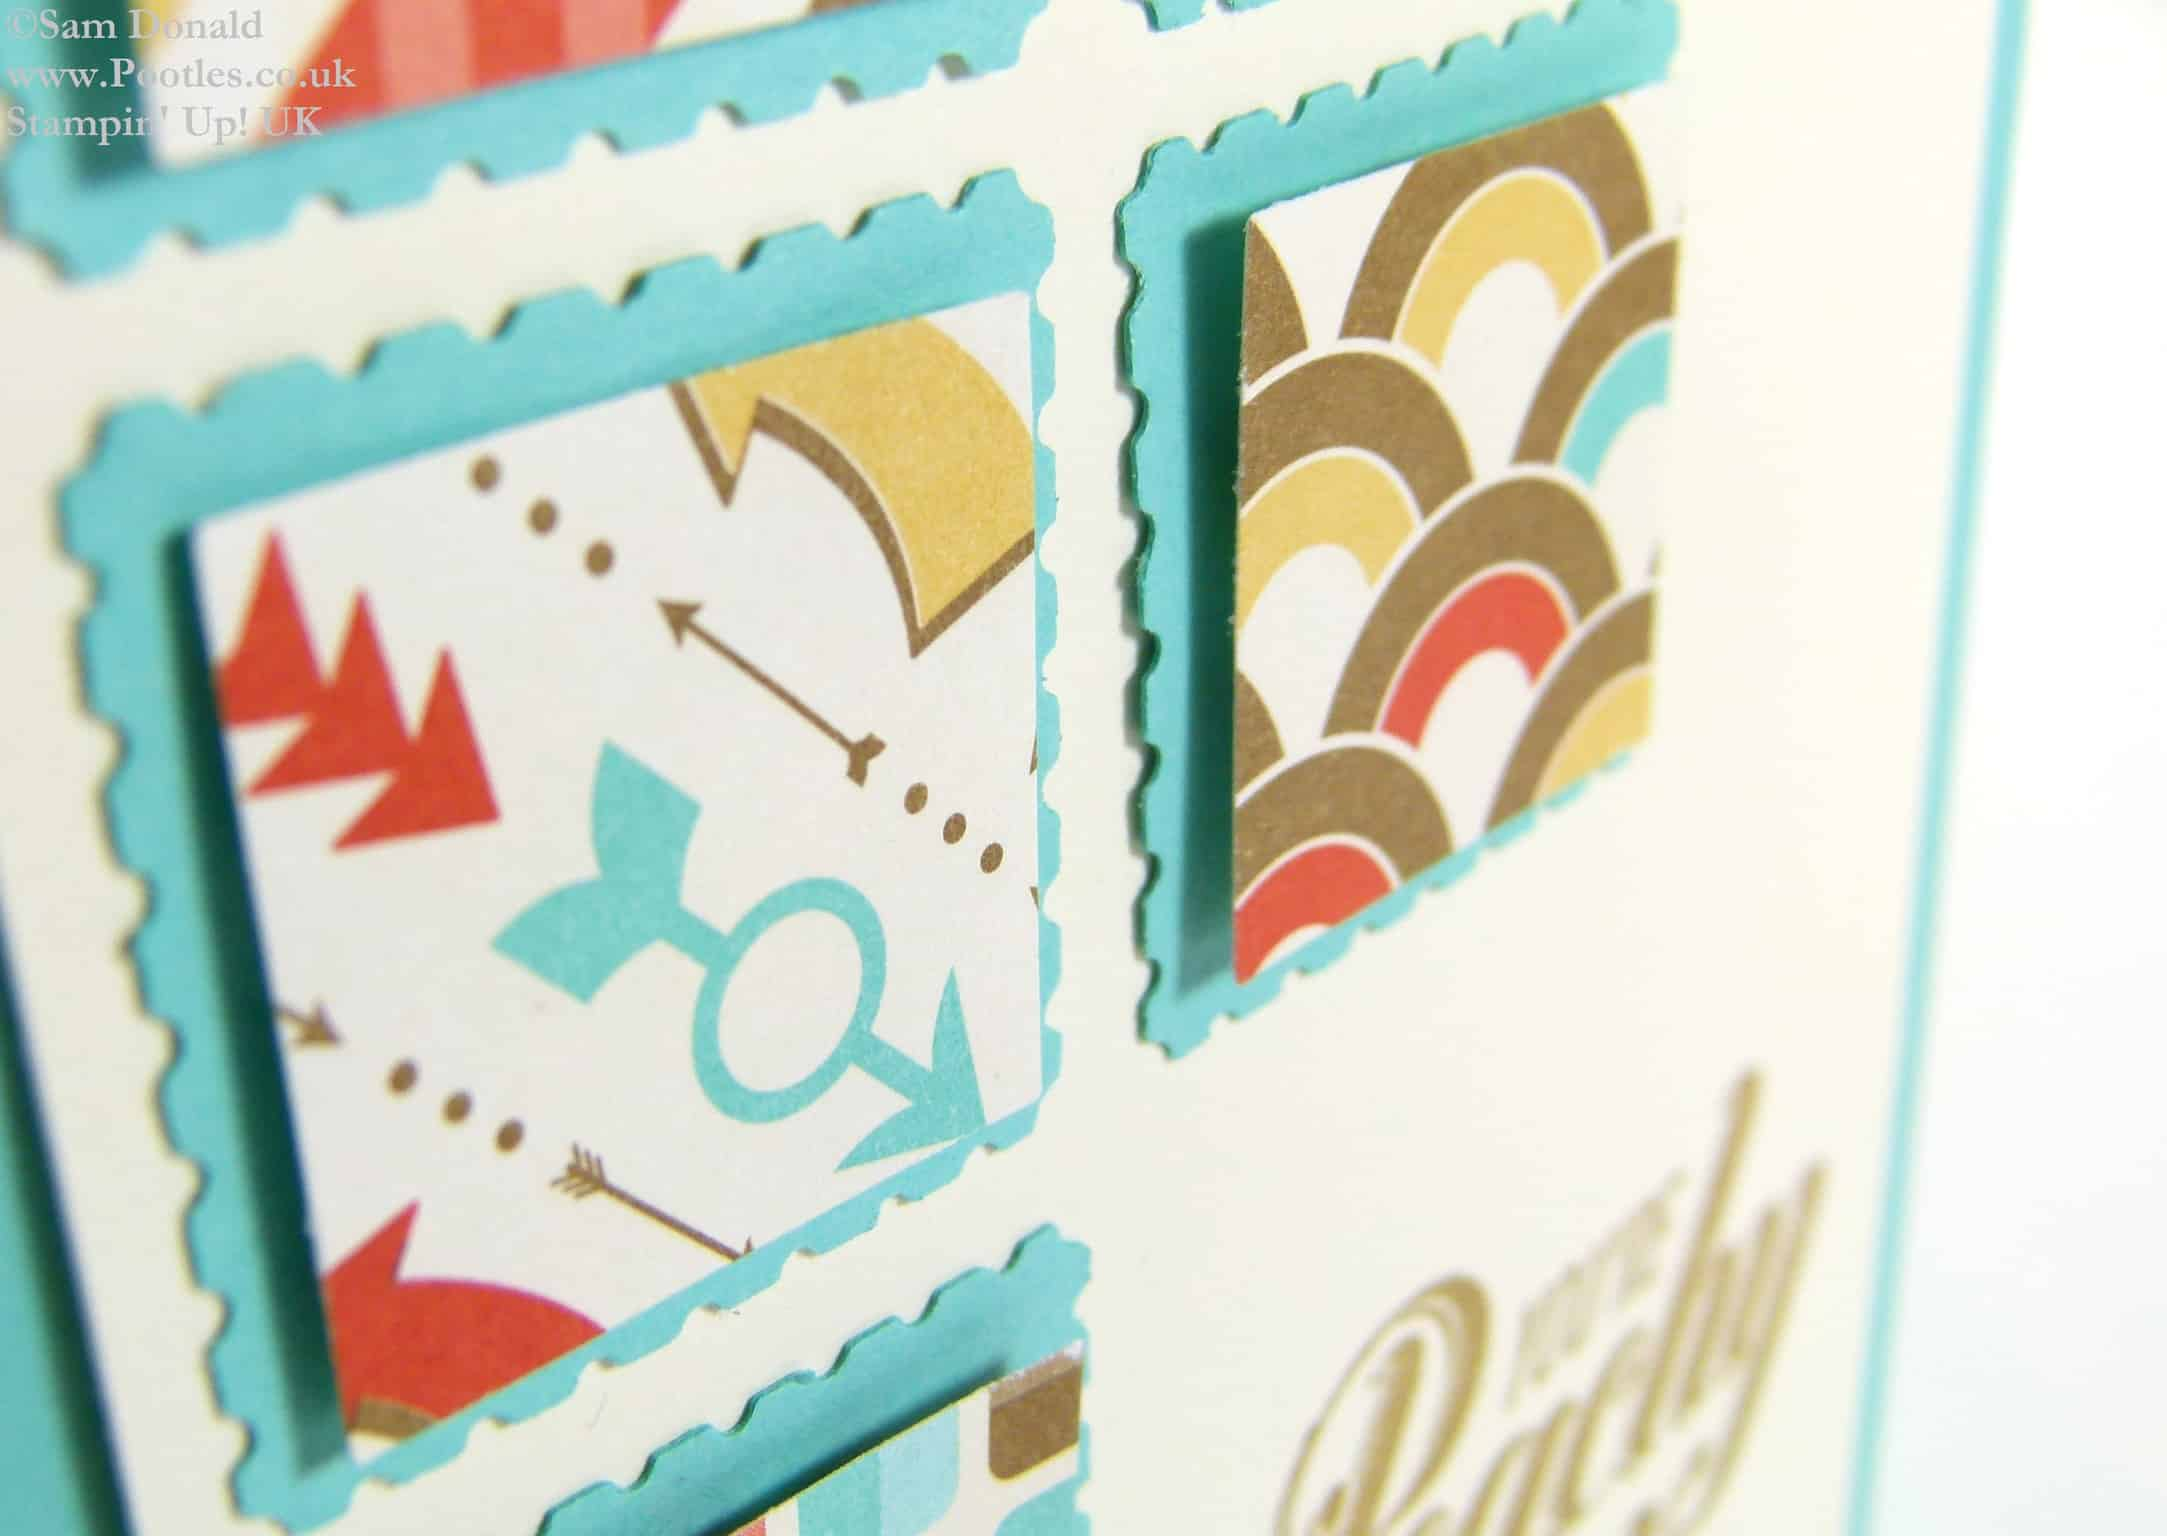 POOTLES Stampin' Up! UK Peachy Keen Retro Fresh Showcase